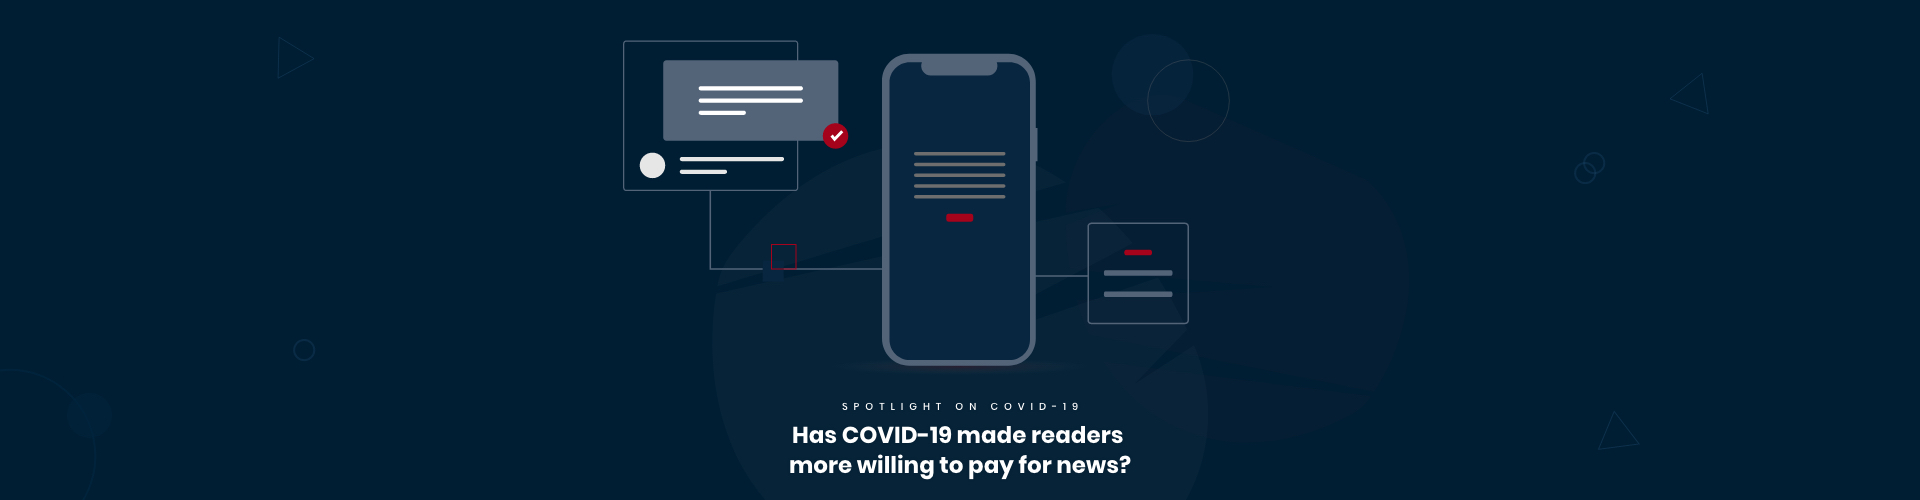 Has COVID-19 made readers more willing to pay for news?